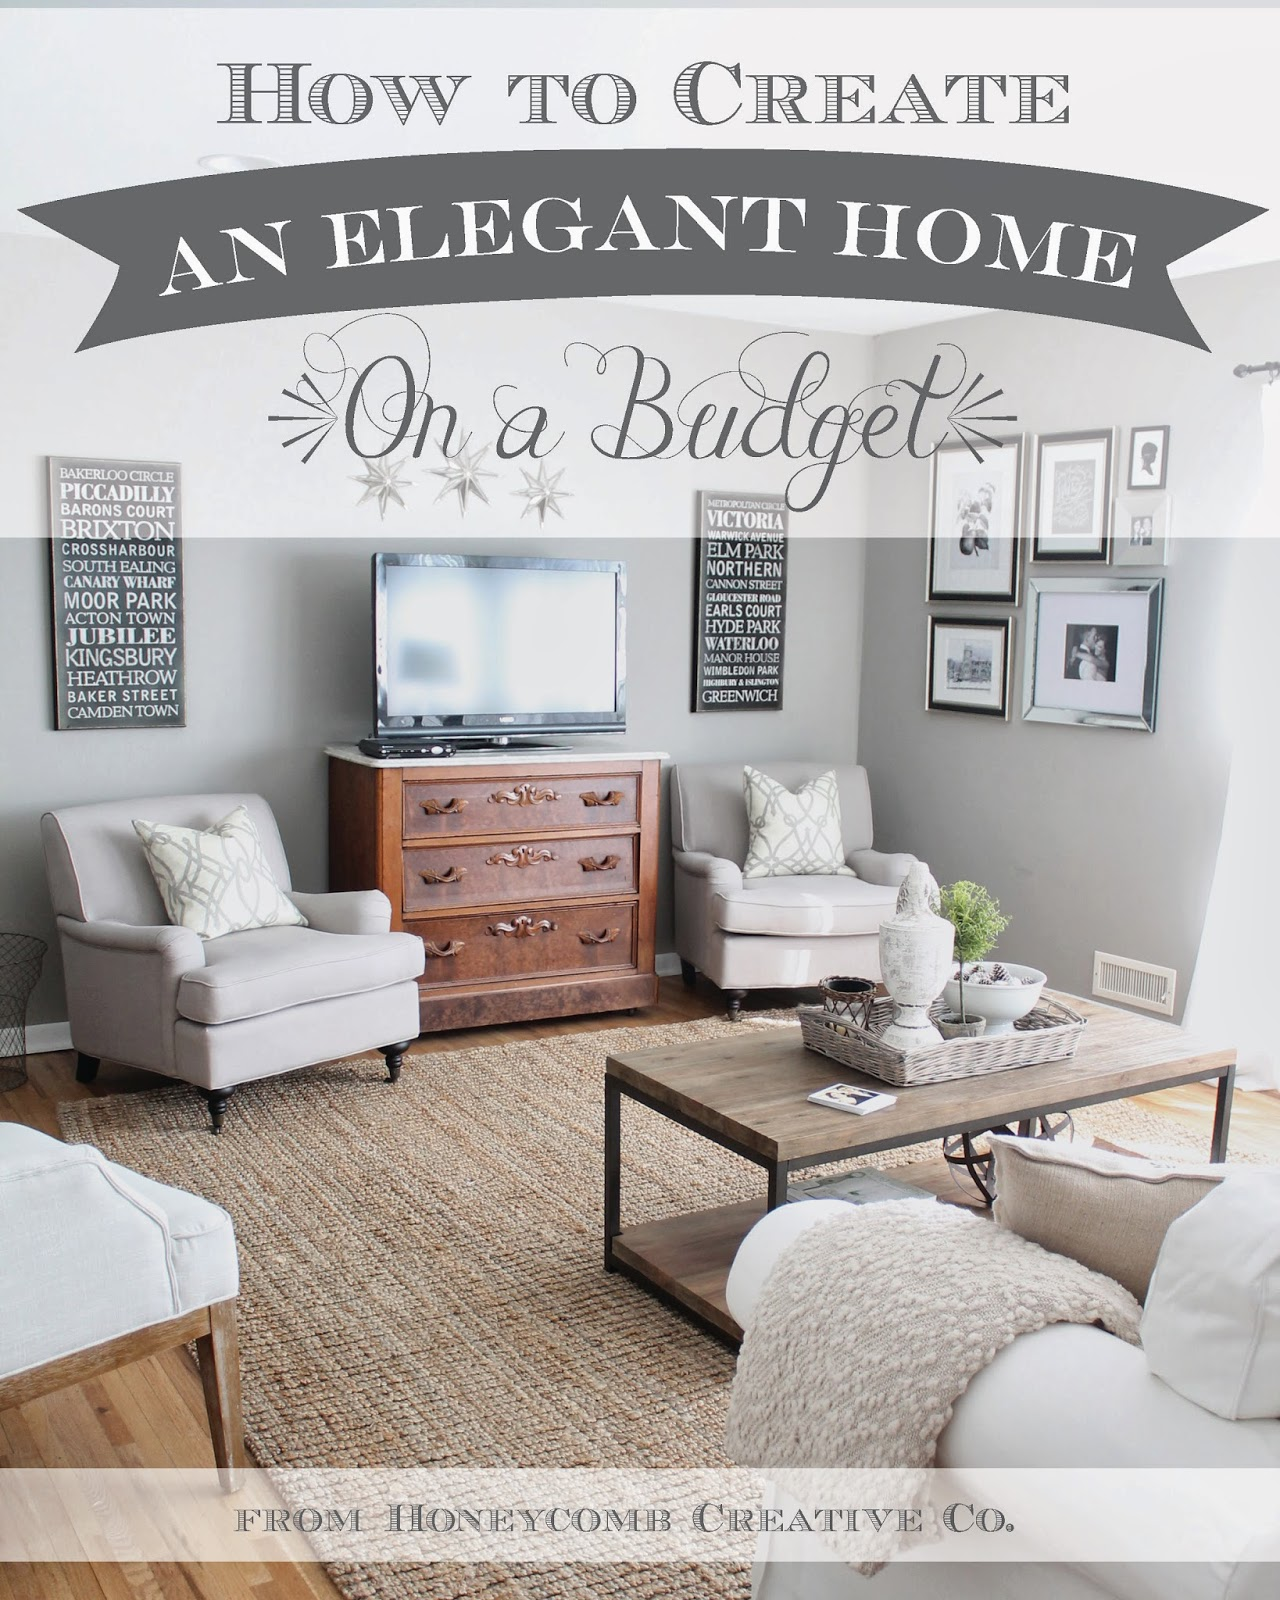 Home Decor Elegant Home Decor Diy: 12th And White: How To Create An Elegant Home On A Budget: 7 Tips & Tricks